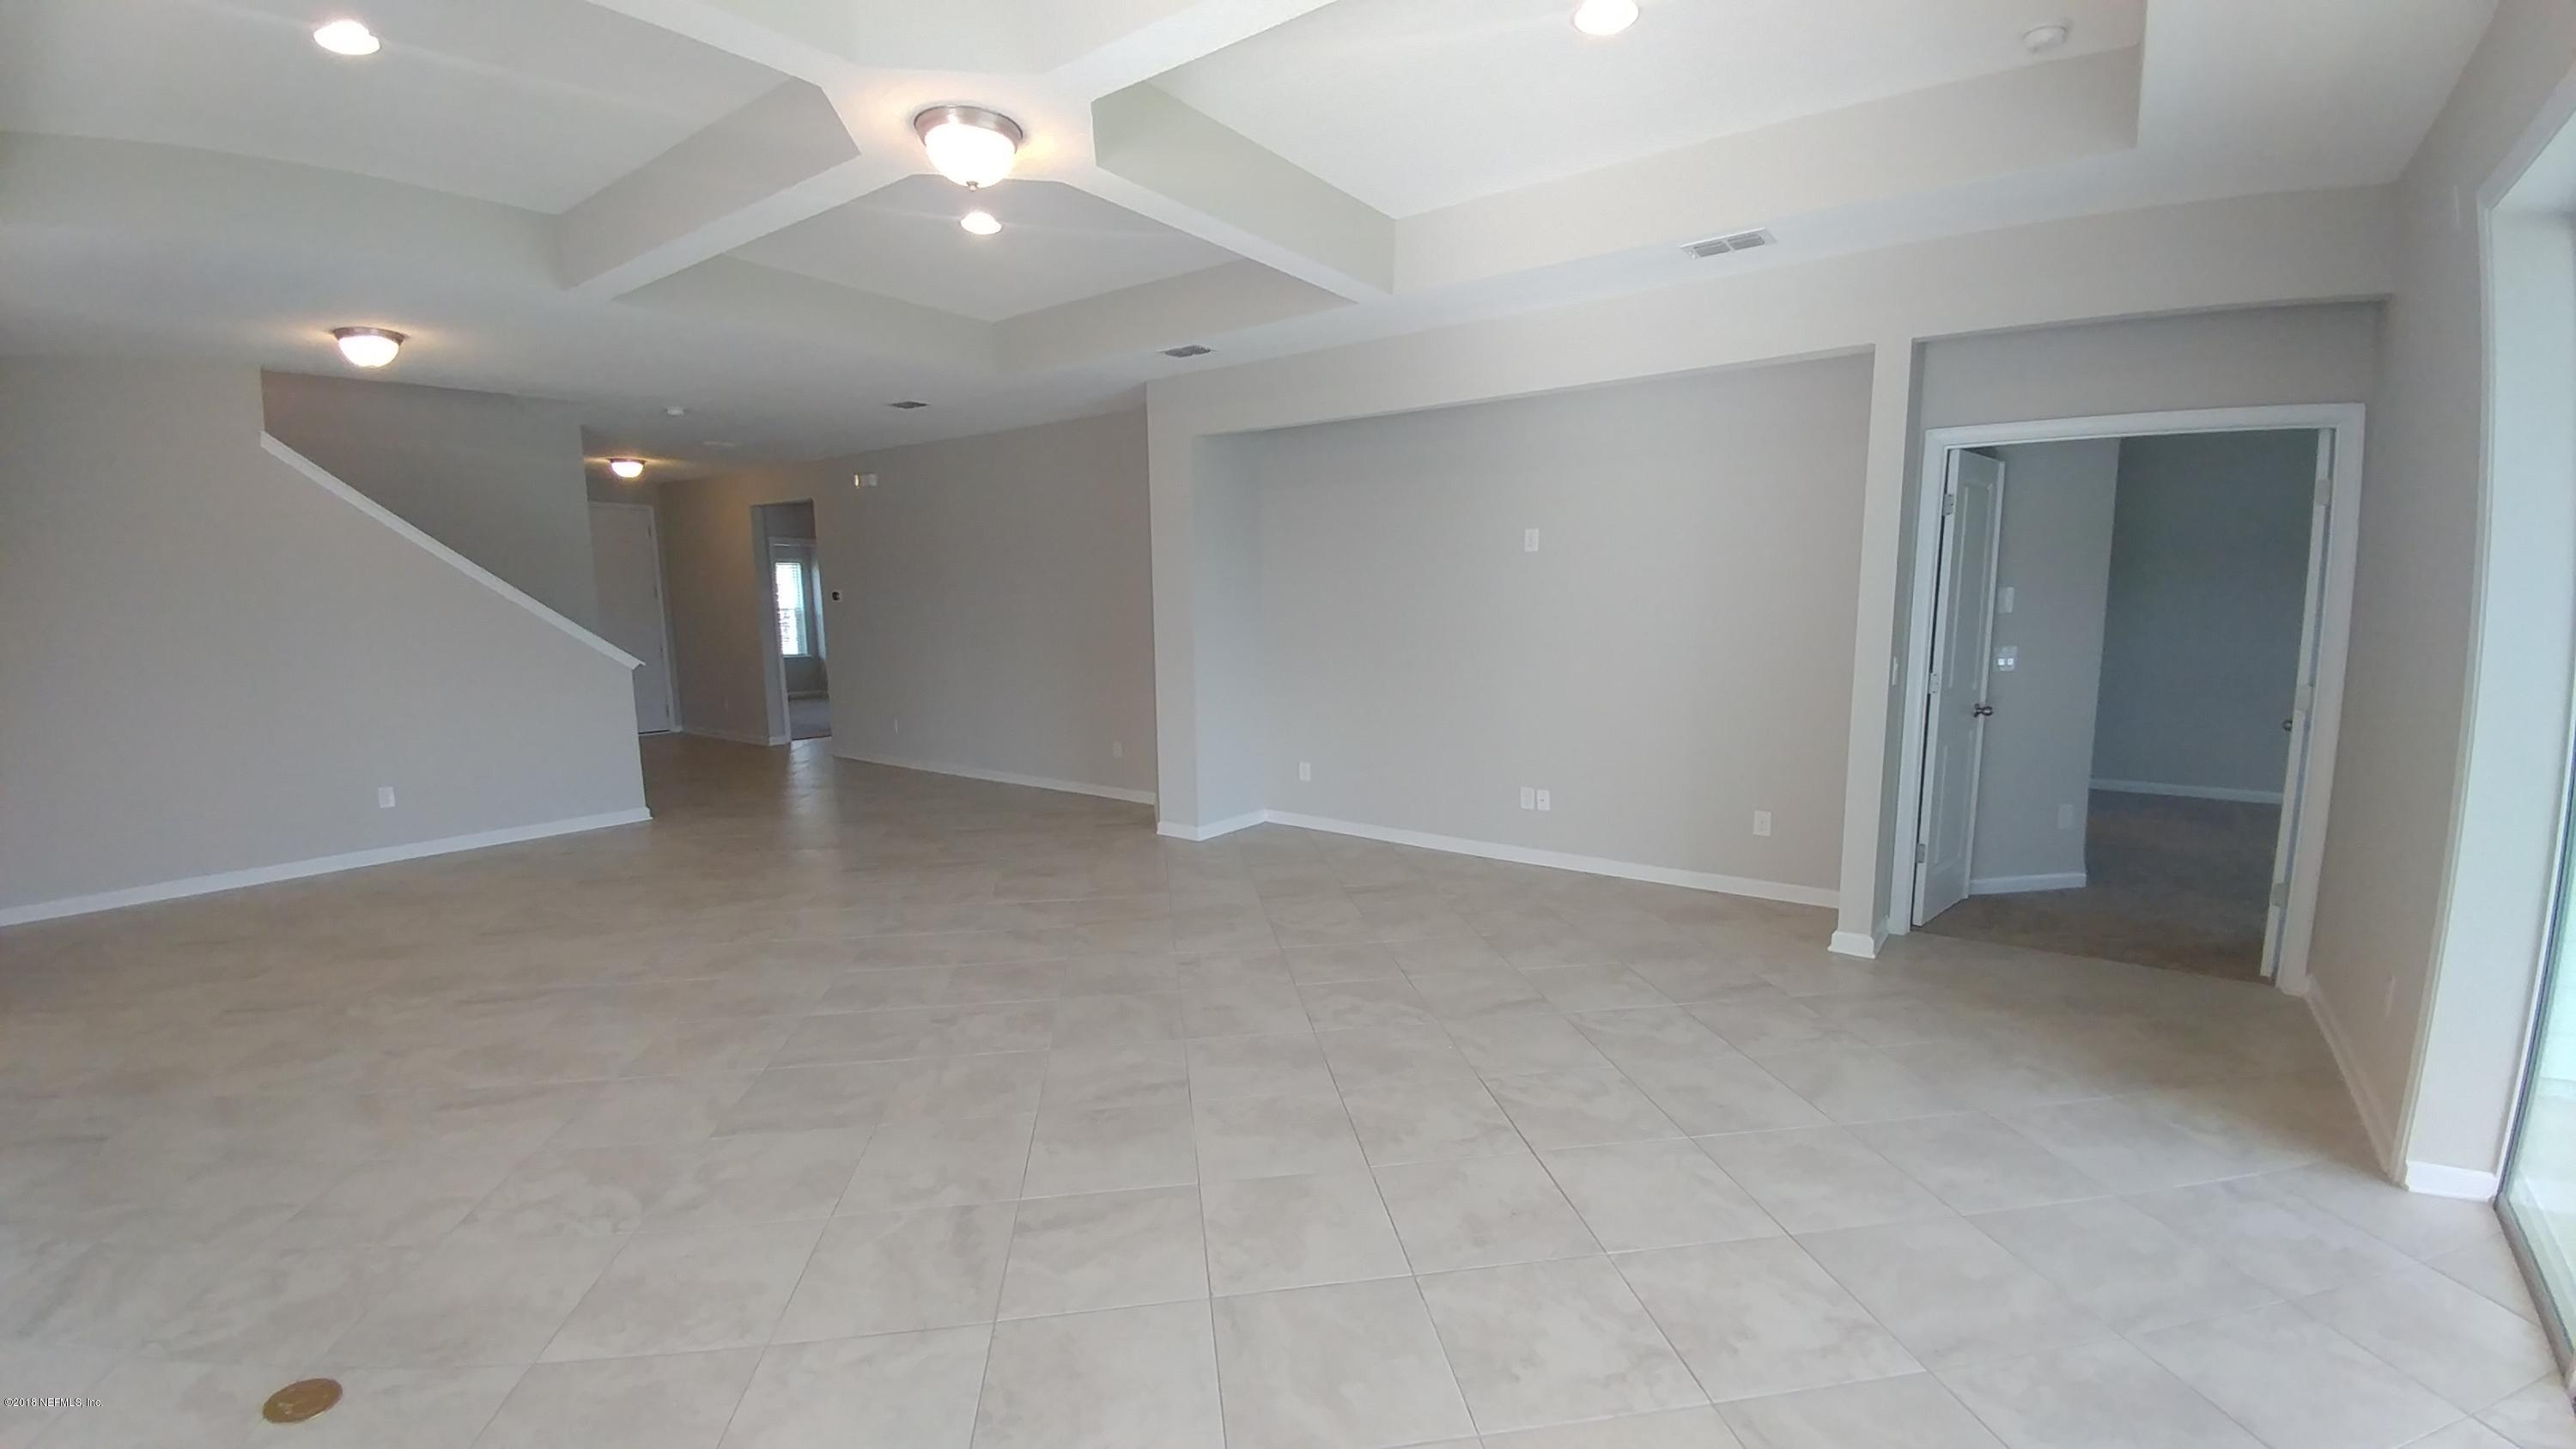 95298 SNAPDRAGON, FERNANDINA BEACH, FLORIDA 32034, 4 Bedrooms Bedrooms, ,4 BathroomsBathrooms,Residential - single family,For sale,SNAPDRAGON,954052